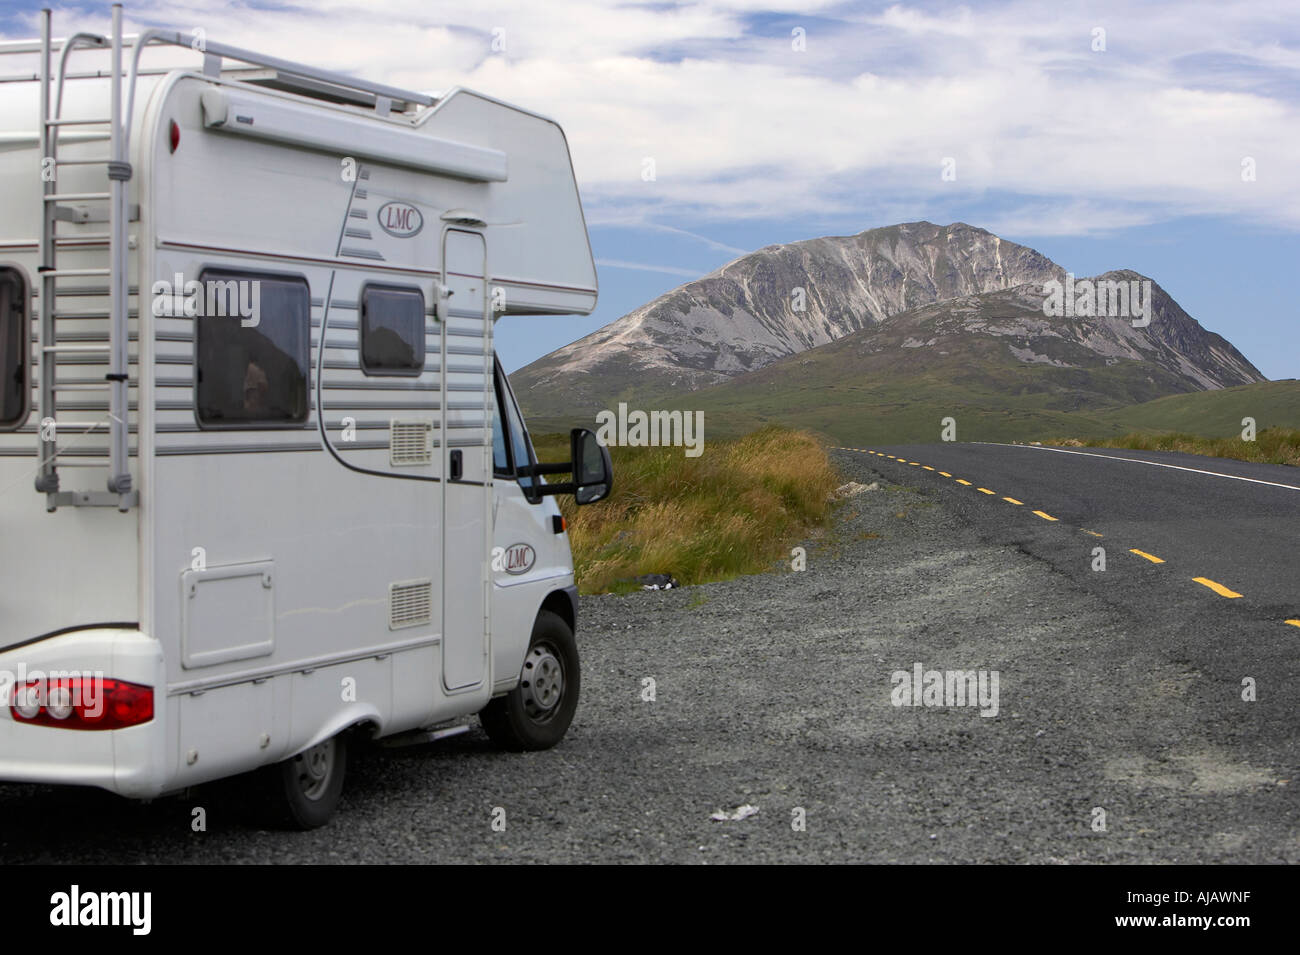 touring camper van at the side of the road next to Errigal mountain donegals highest peak against a blue sky - Stock Image